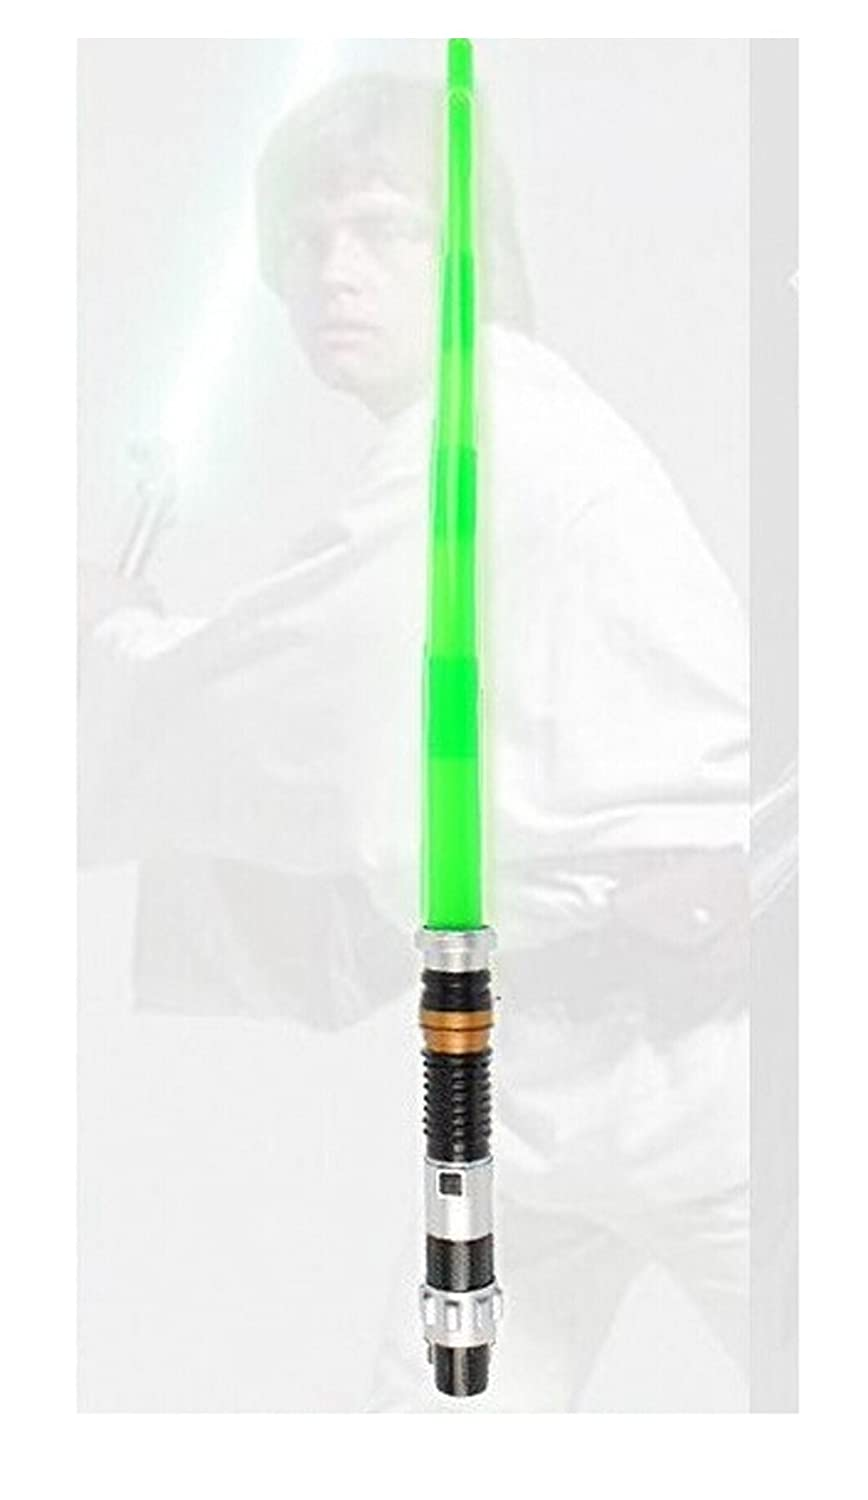 HOLLY Star Wars LightSaber with LED Light & Sound Flashing Light Up Laser Skywalker Lightsaber Sabre Sword Toy-Green